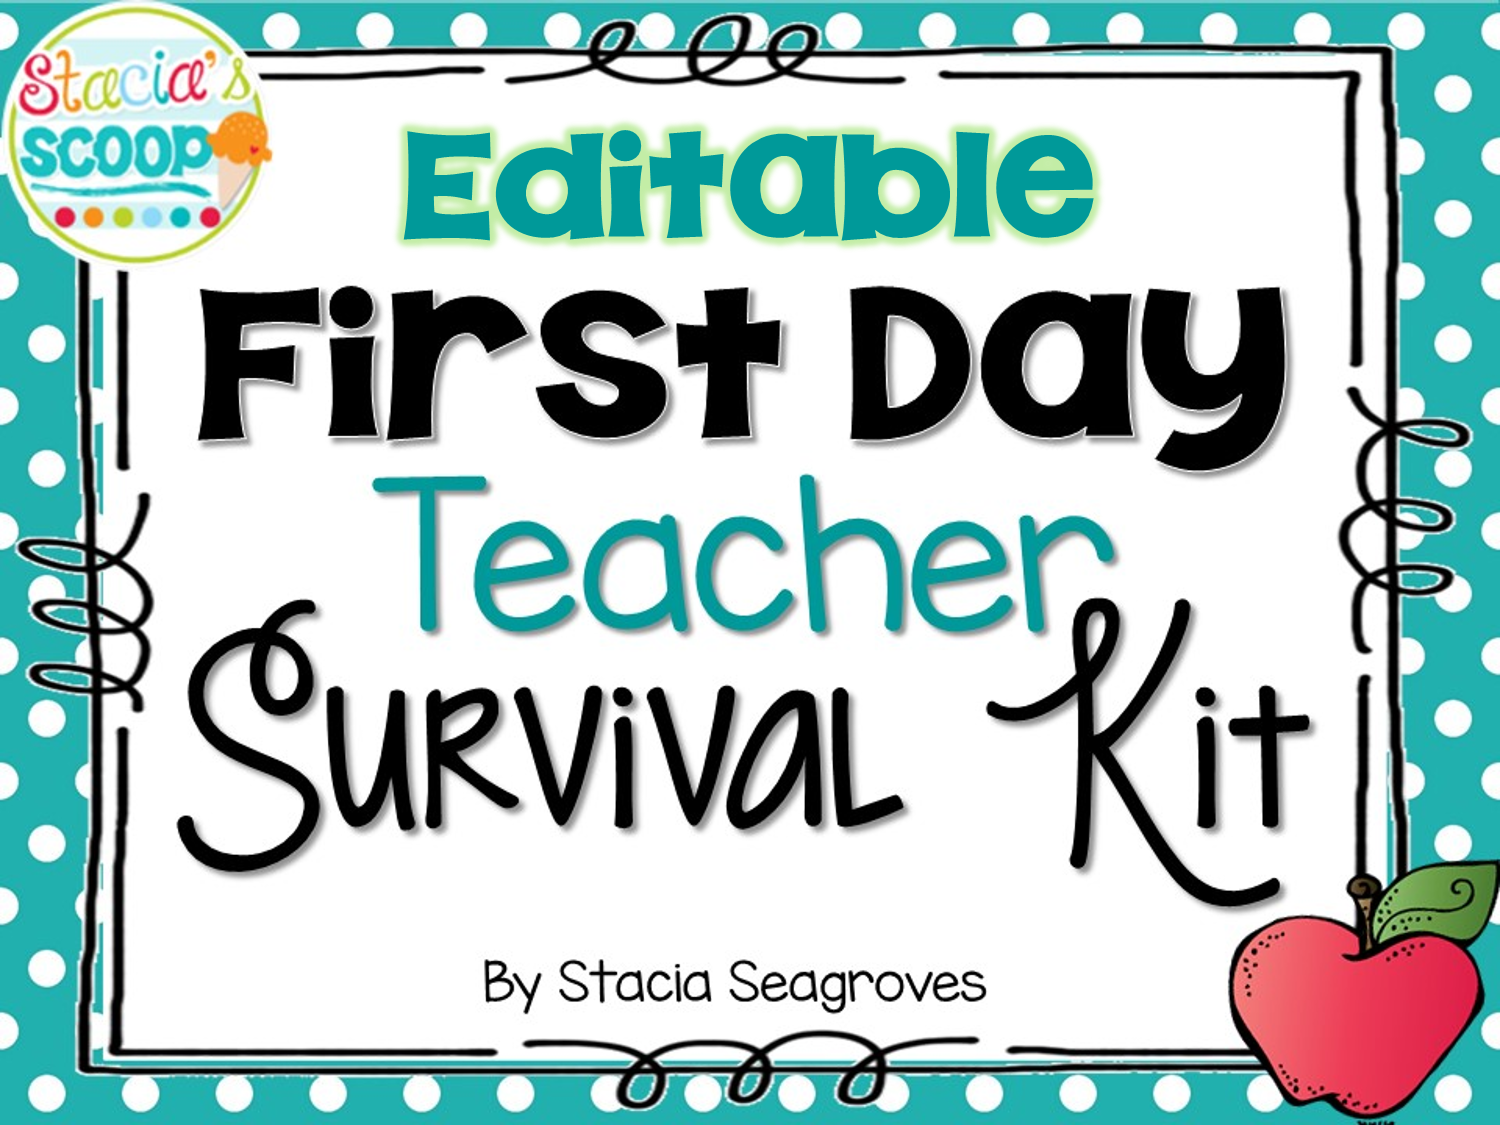 http://www.teacherspayteachers.com/Product/Editable-First-Day-Teacher-Survival-Kit-Card-Freebie-1408829